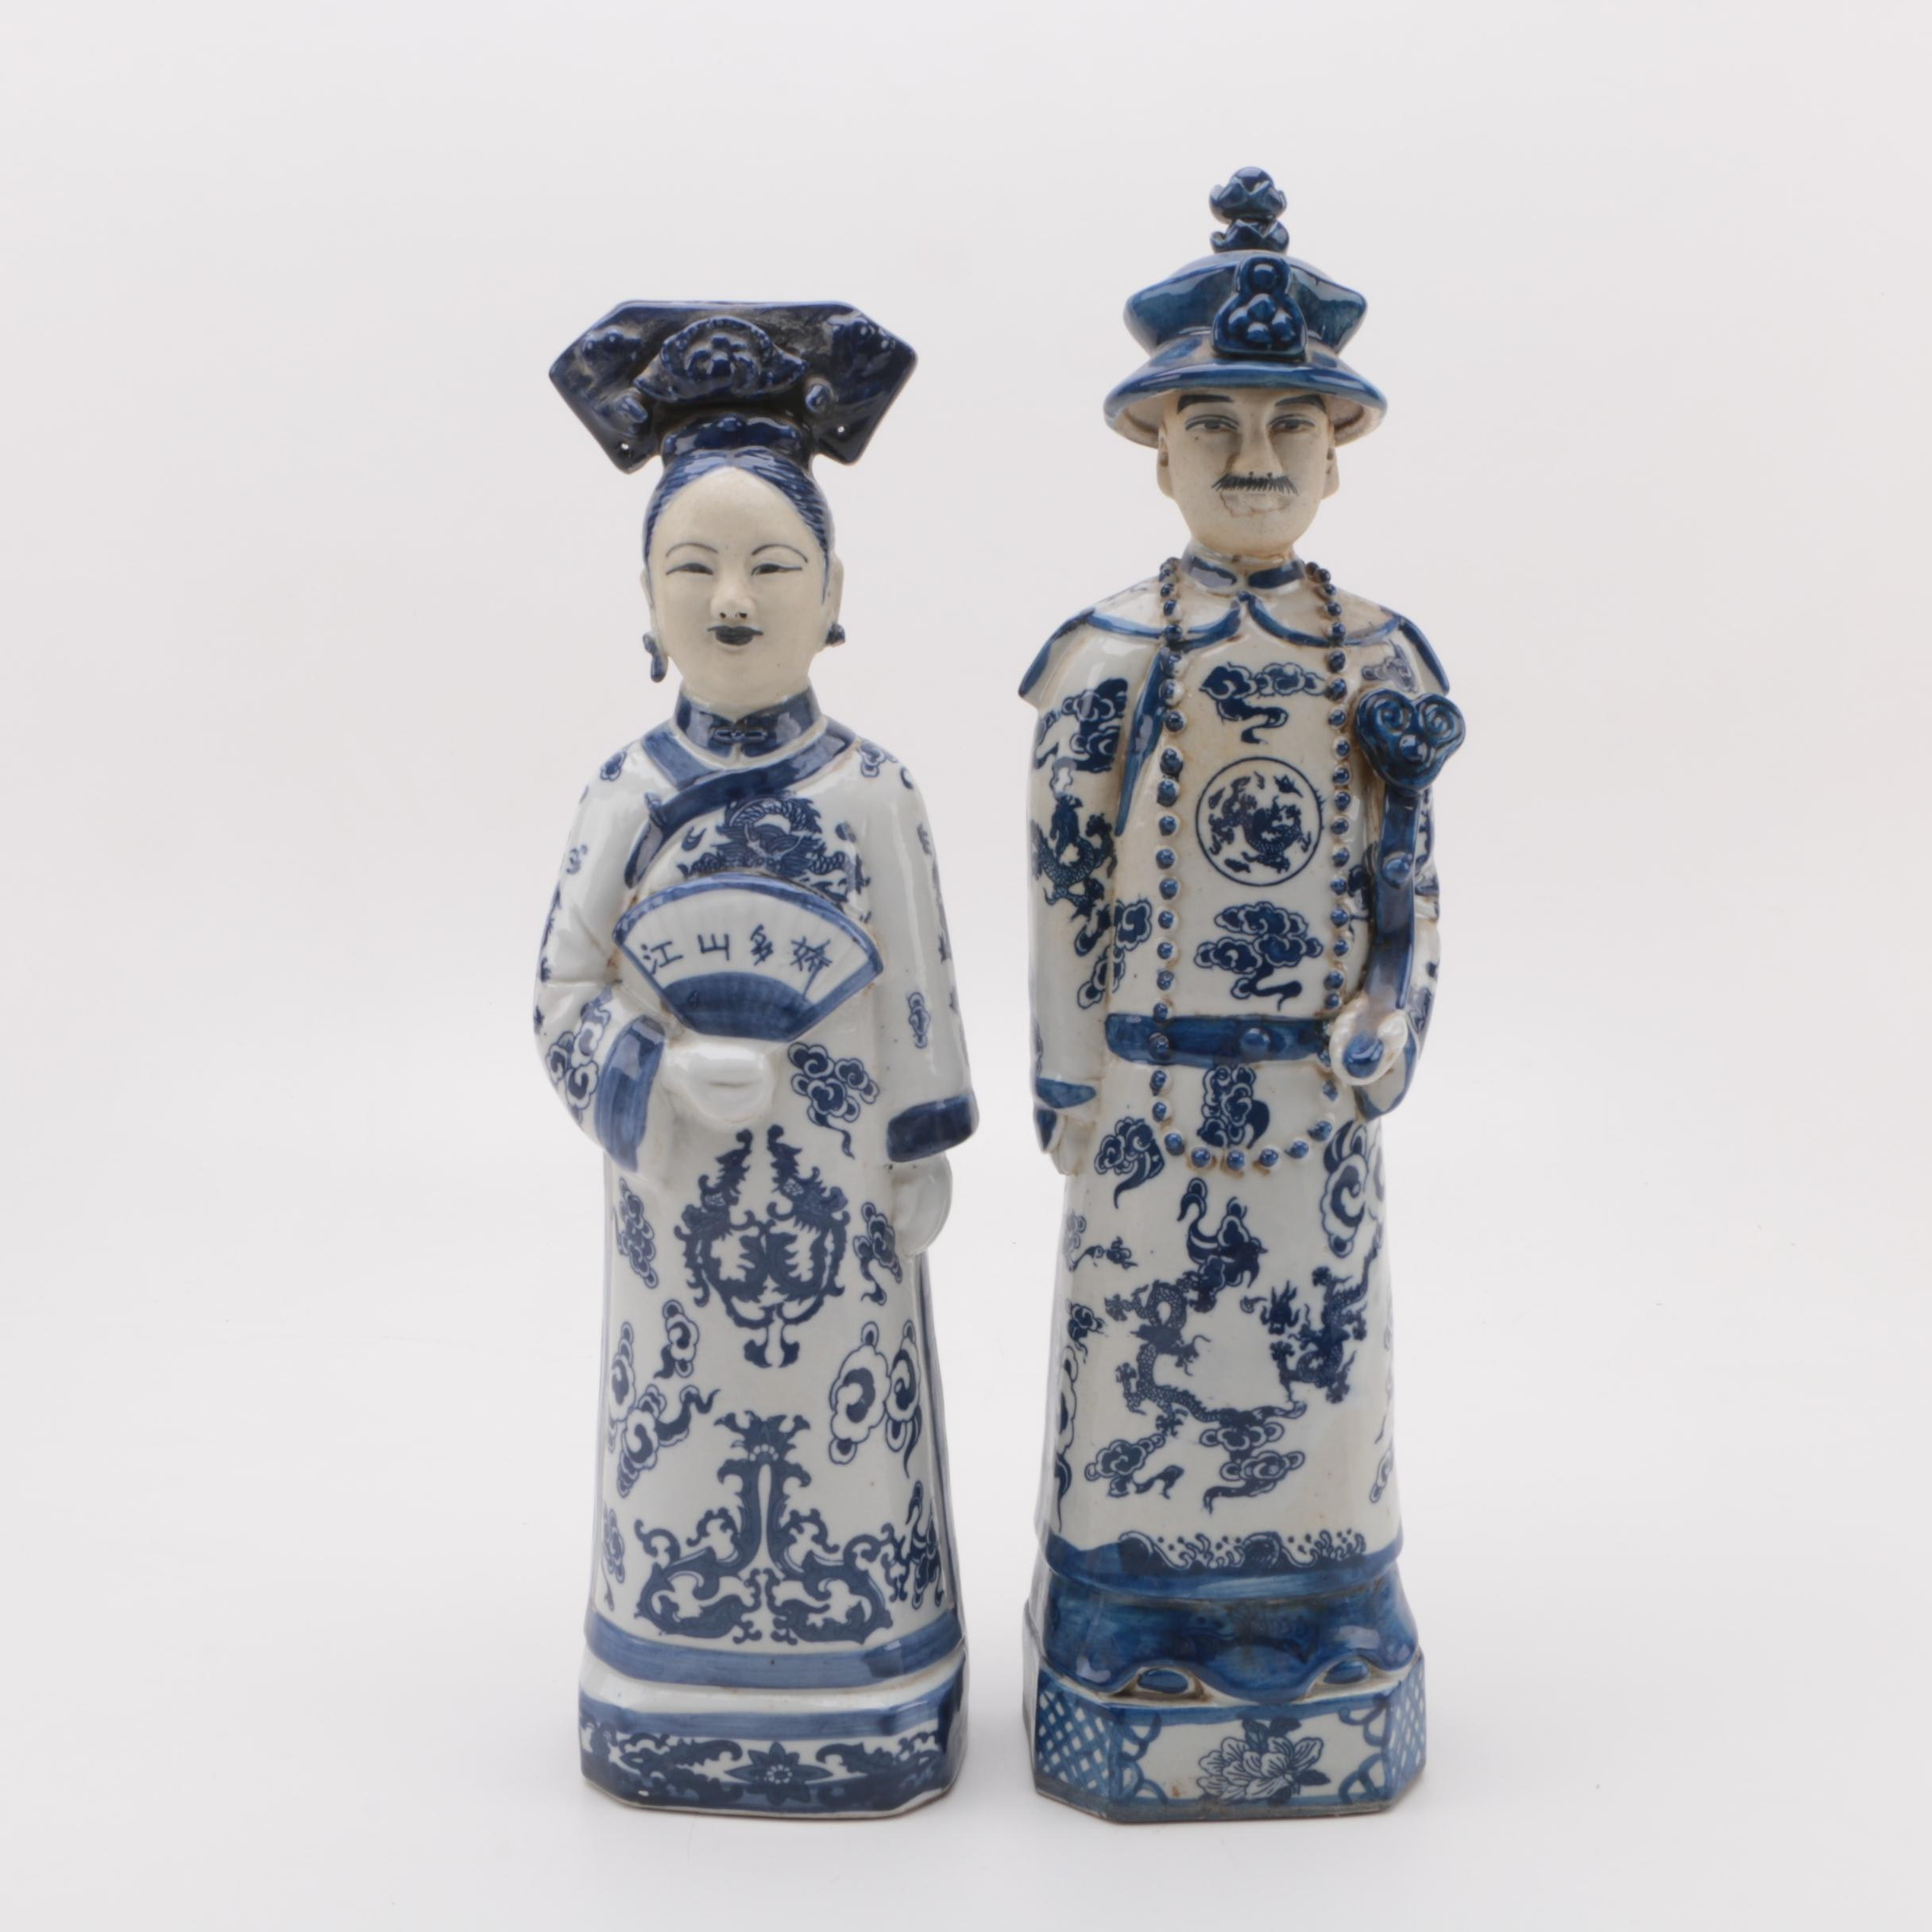 Chinese Emporer and Empress Porcelain Figurines